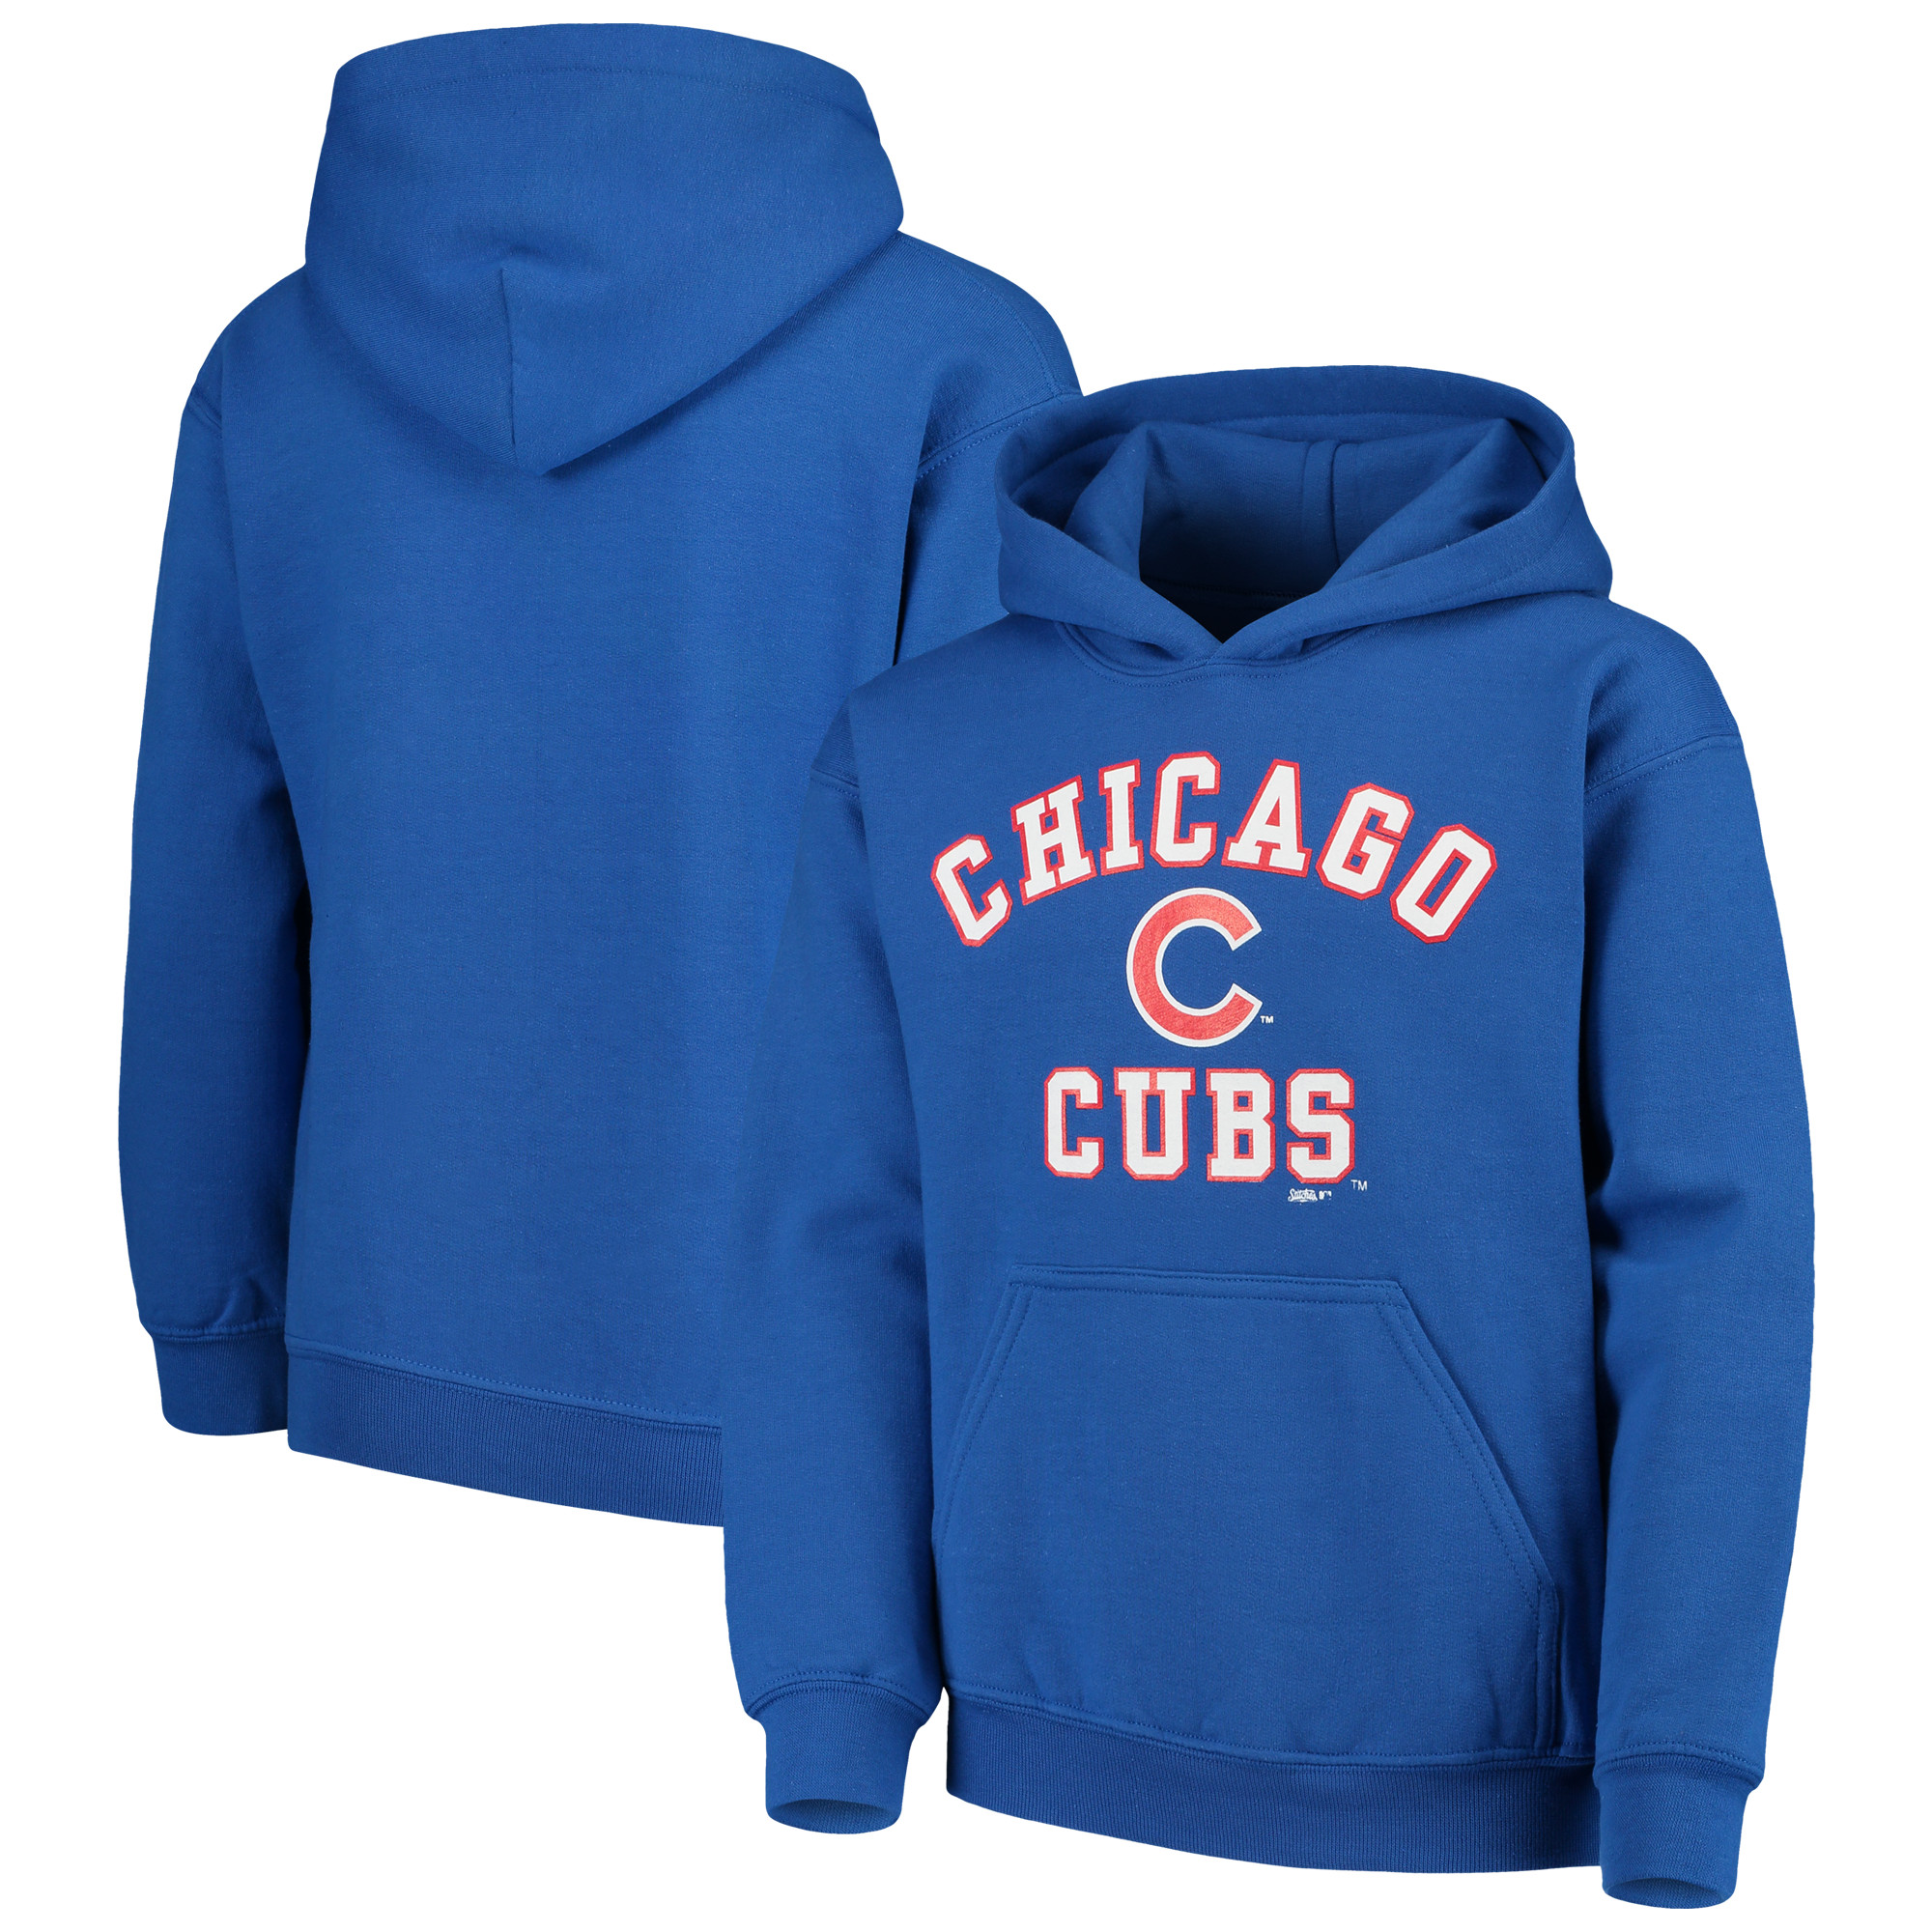 Chicago Cubs Stitches Youth Fleece Pullover Hoodie - Royal